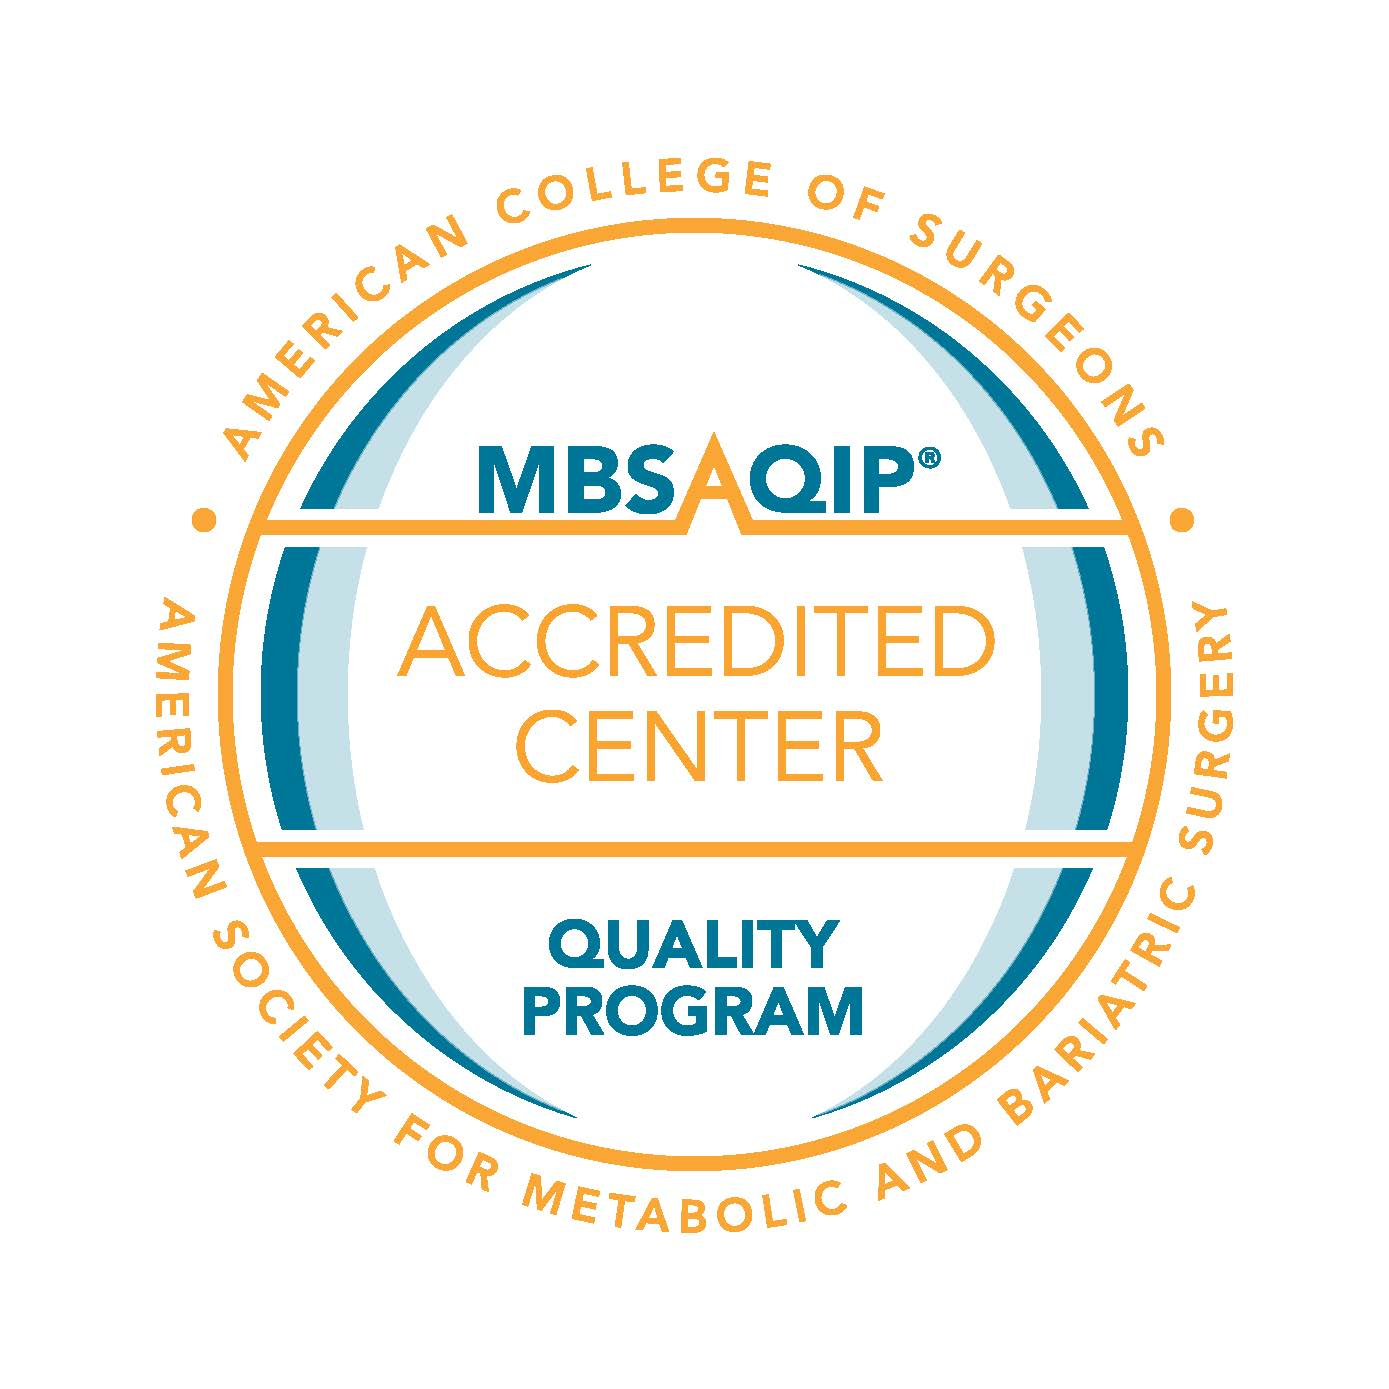 Metabolic and Bariatric Surgery Accreditation and Quality Improvement Program Seal